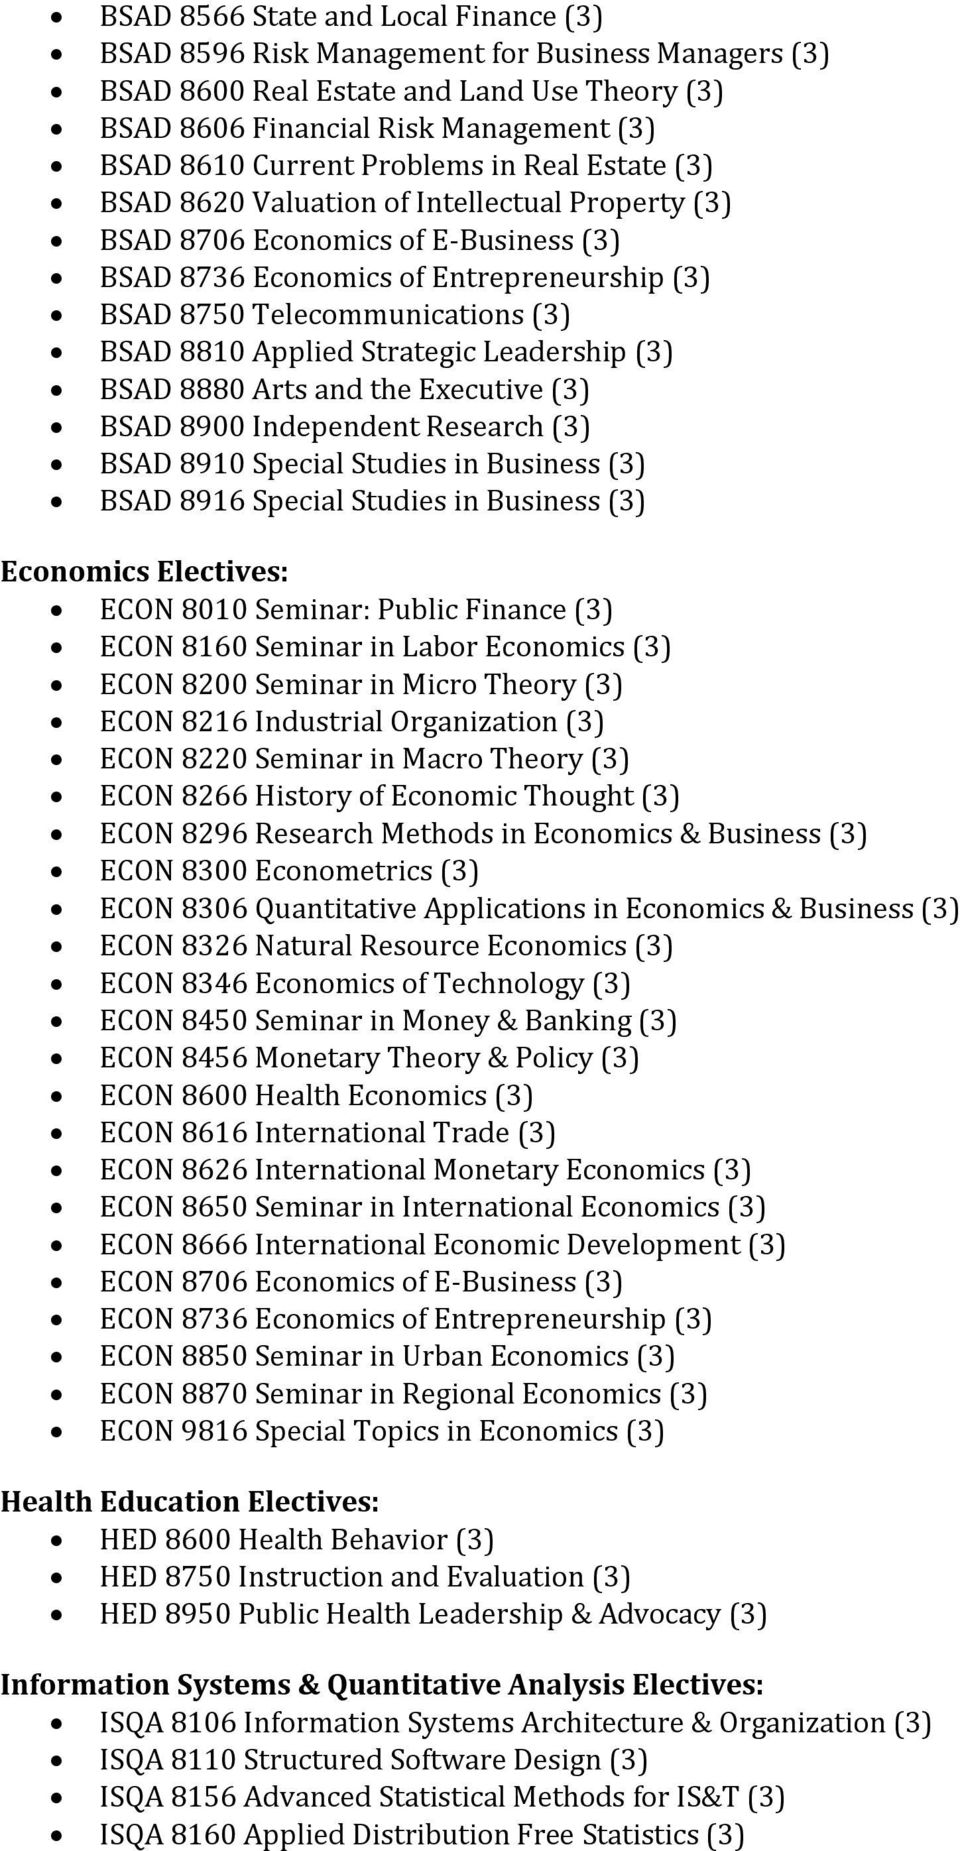 8810 Applied Strategic Leadership (3) BSAD 8880 Arts and the Executive (3) BSAD 8900 Independent Research (3) BSAD 8910 Special Studies in Business (3) BSAD 8916 Special Studies in Business (3)